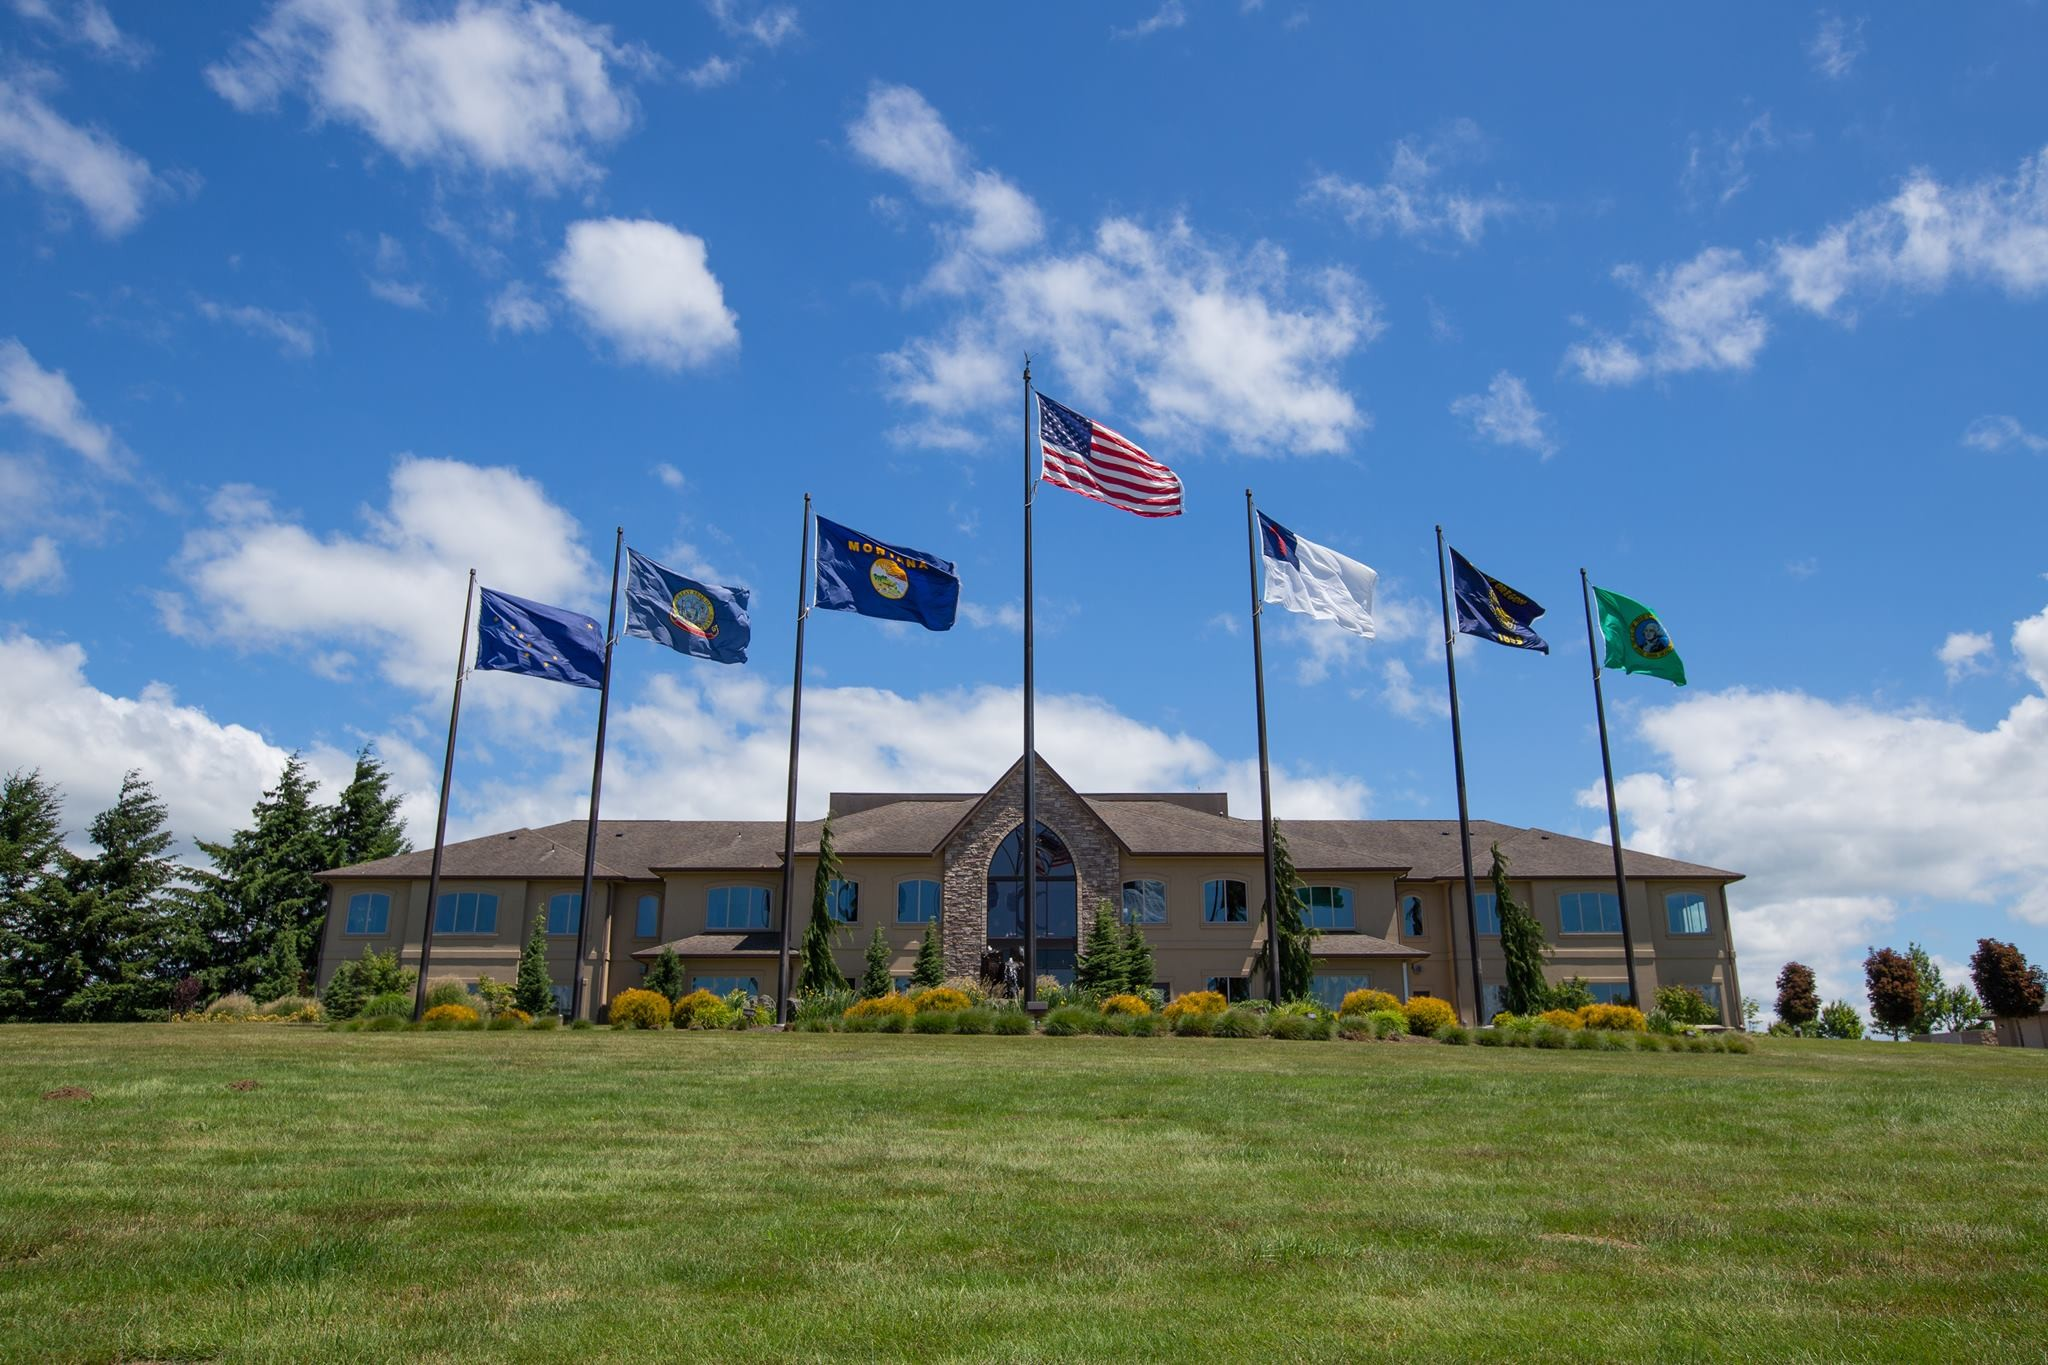 North Pacific Union Conference of Seventh-day Adventists